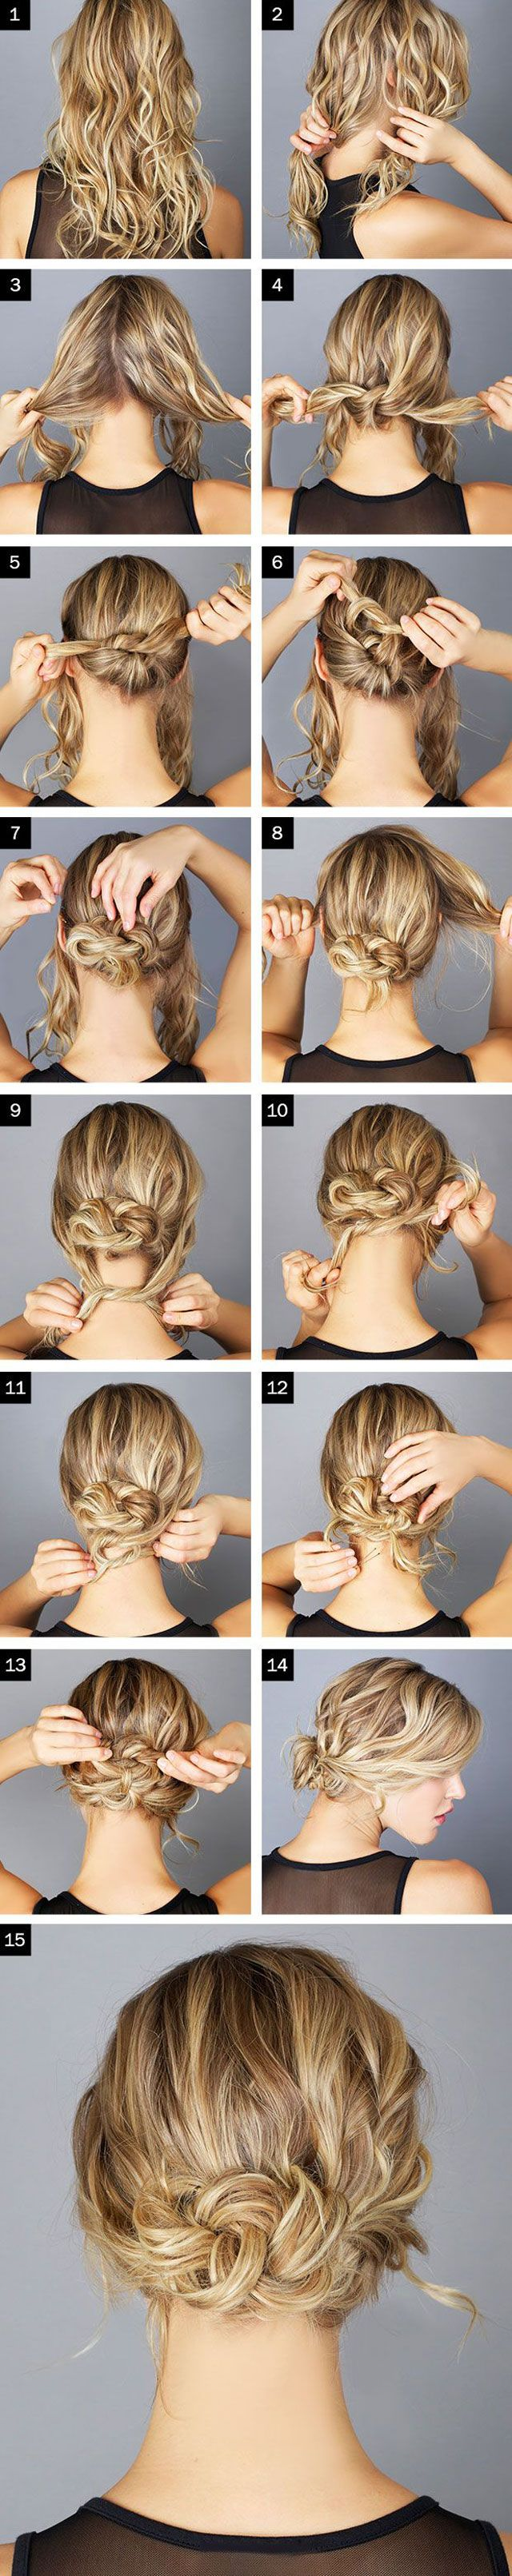 25 best ideas about messy bun tutorials on pinterest perfect bun tutorial long hair buns and - Coiffure chignon facile ...